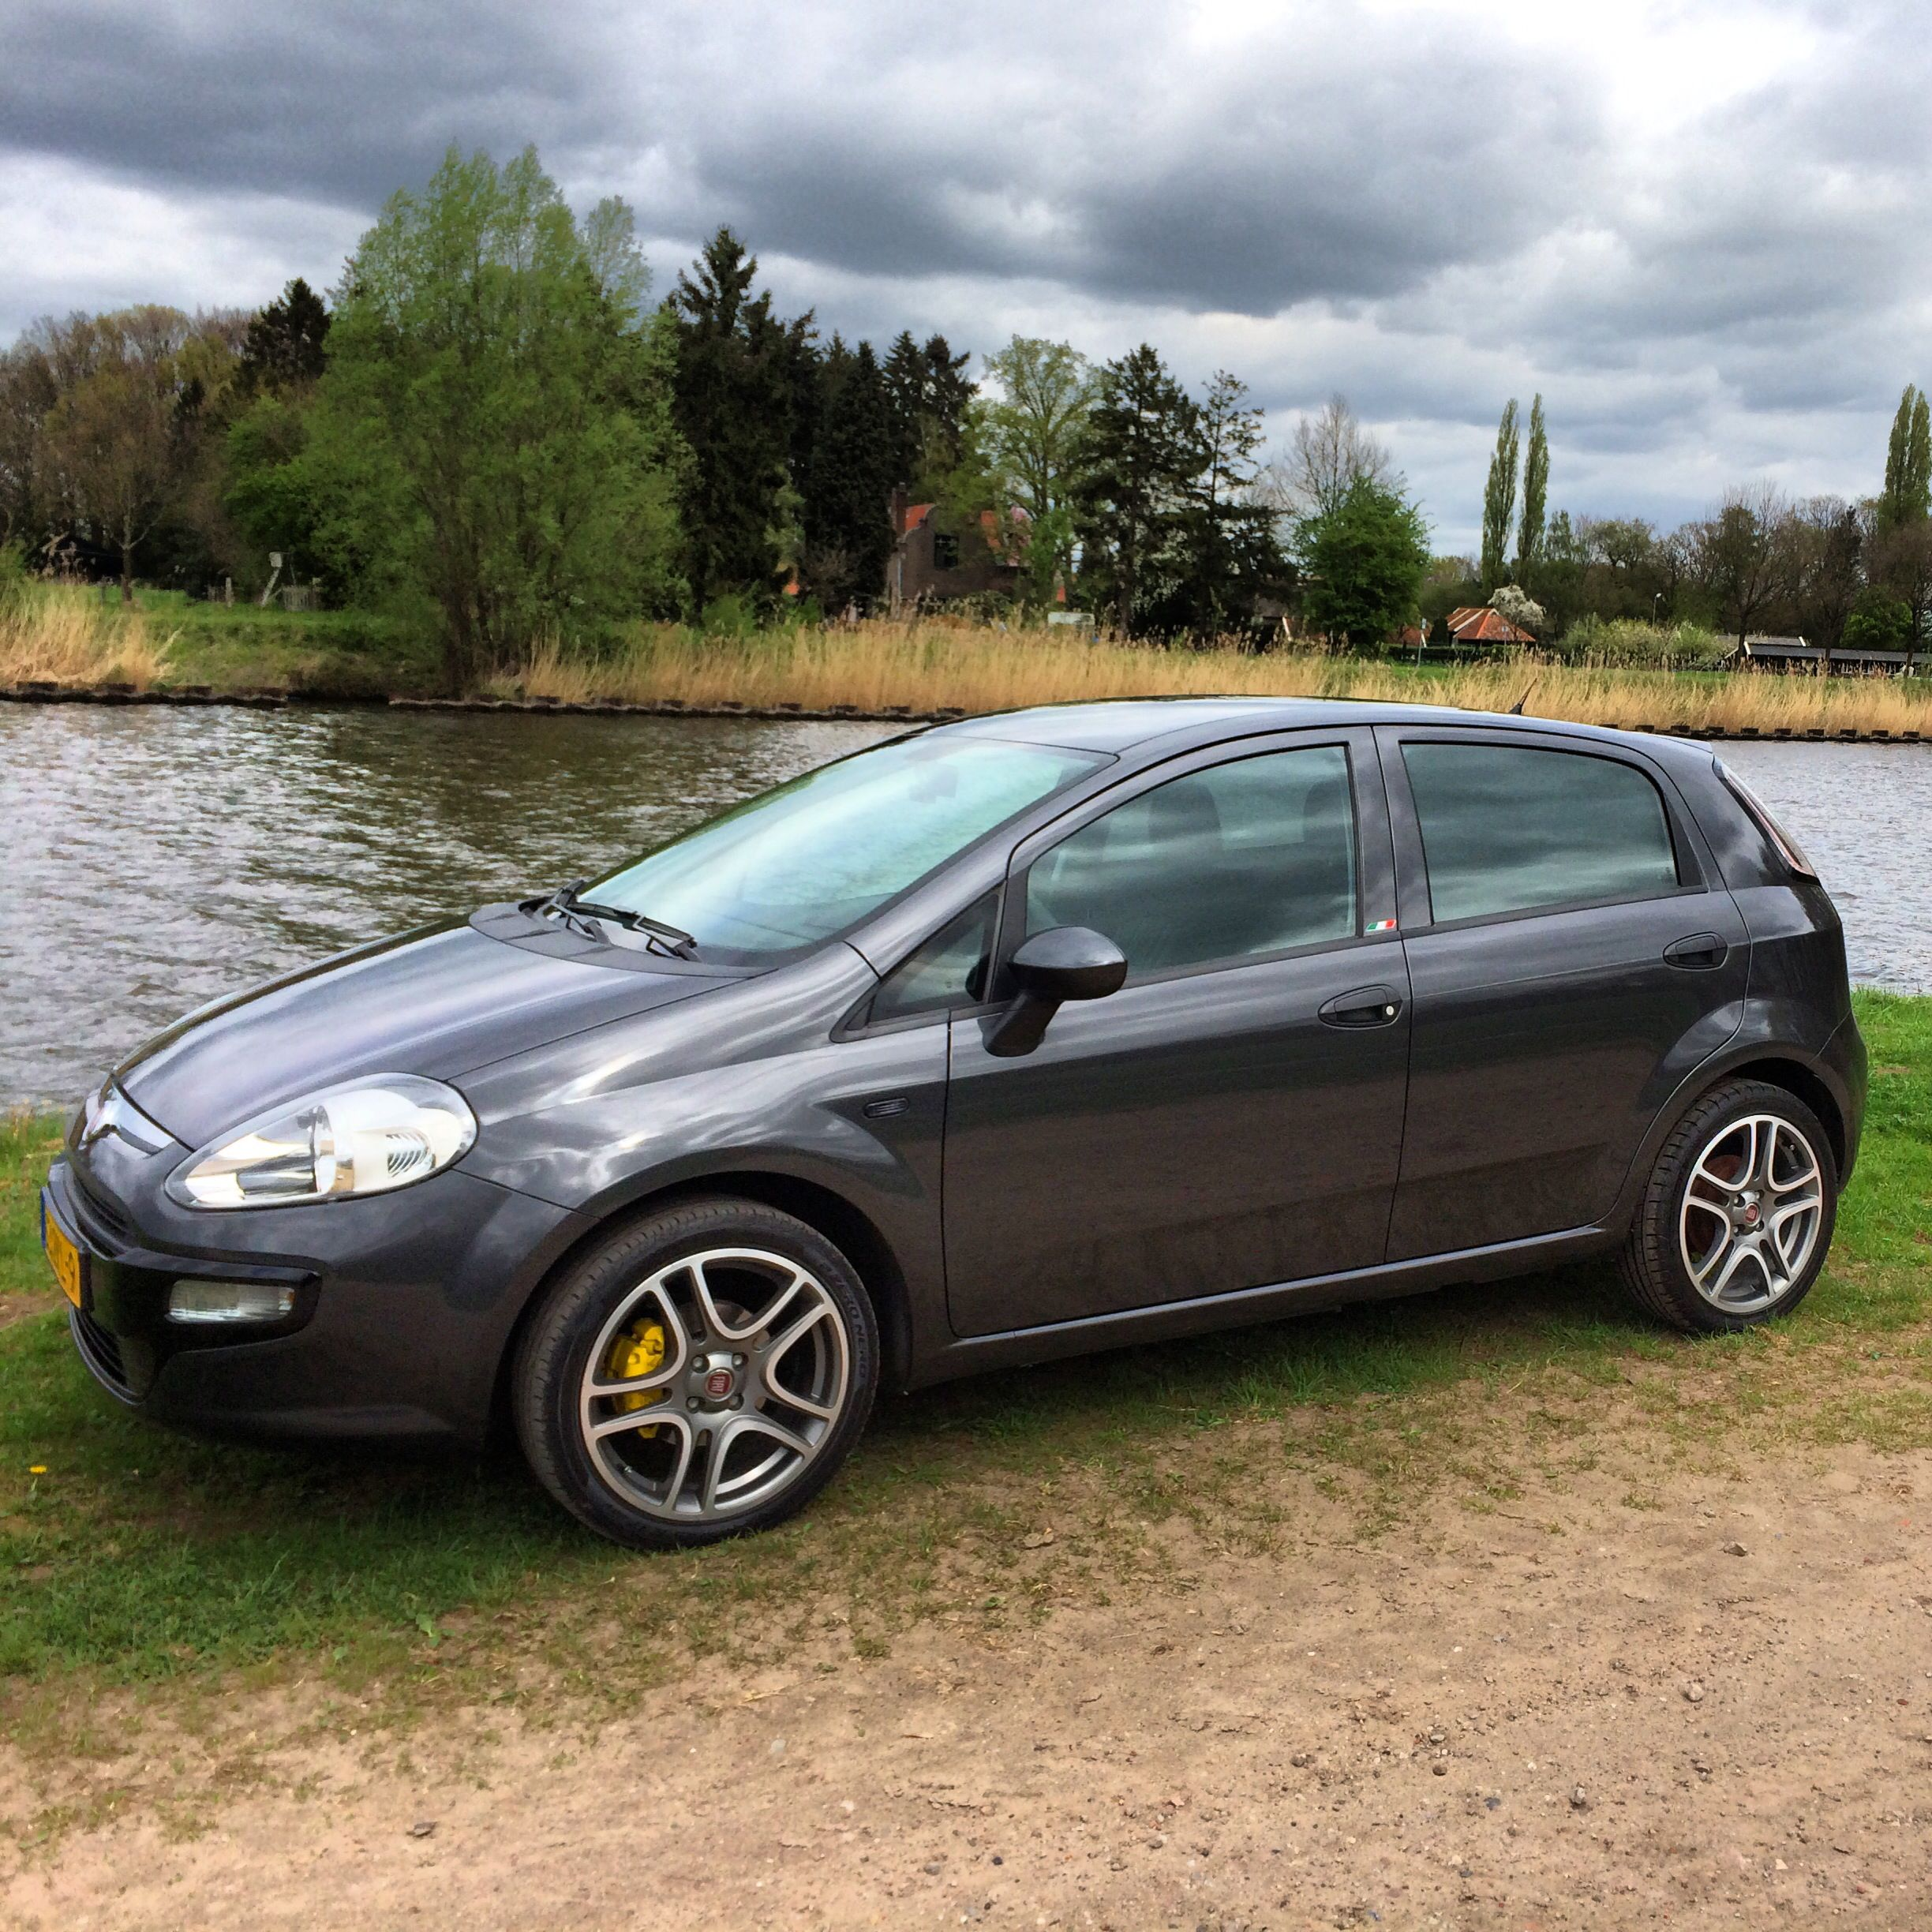 pin pop abarth fiat nz punto autosport pinterest and competizione